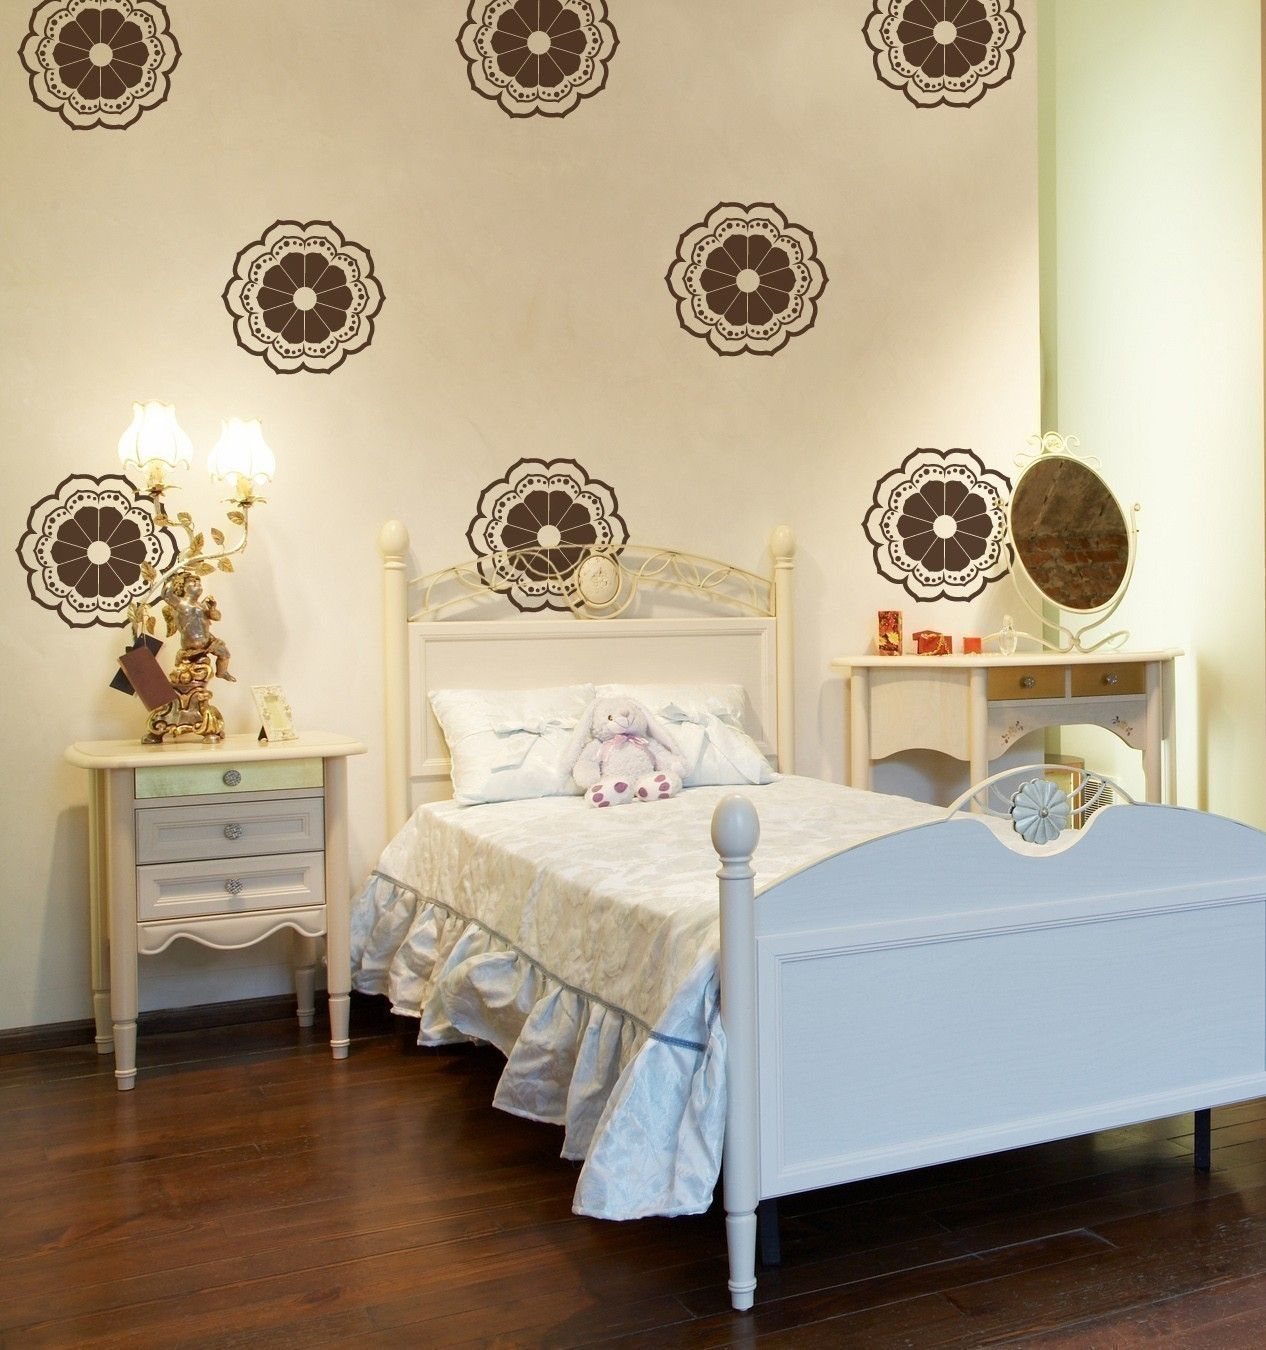 Pretty girls room design vinyl moroccan wall decals ideas for the